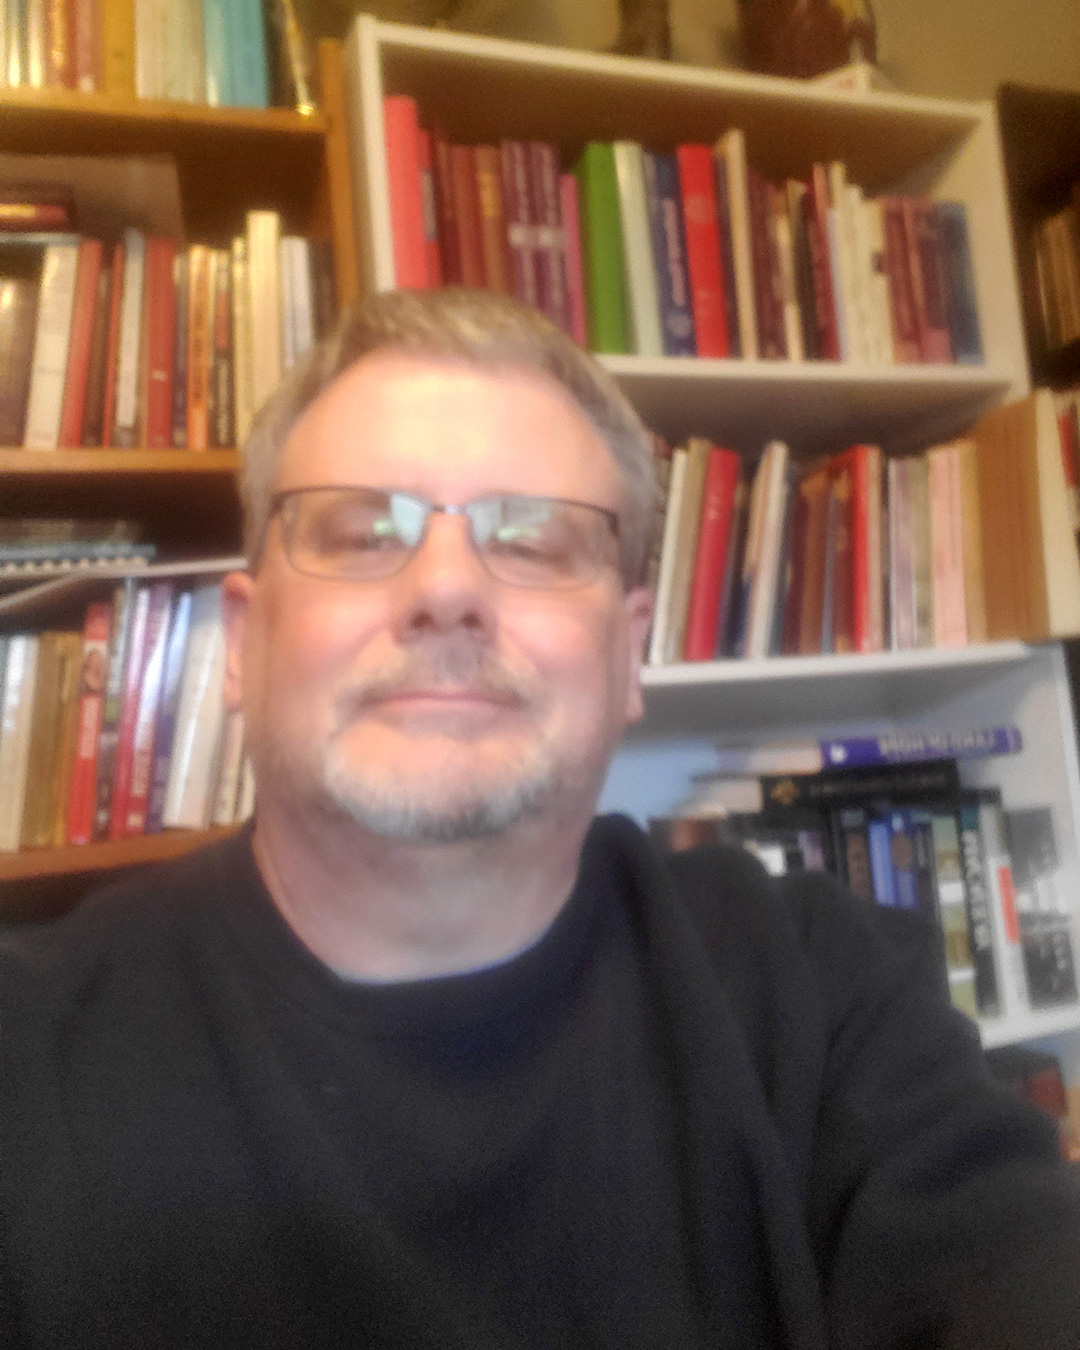 Rev. Tom Rank in his home office surrounded by books